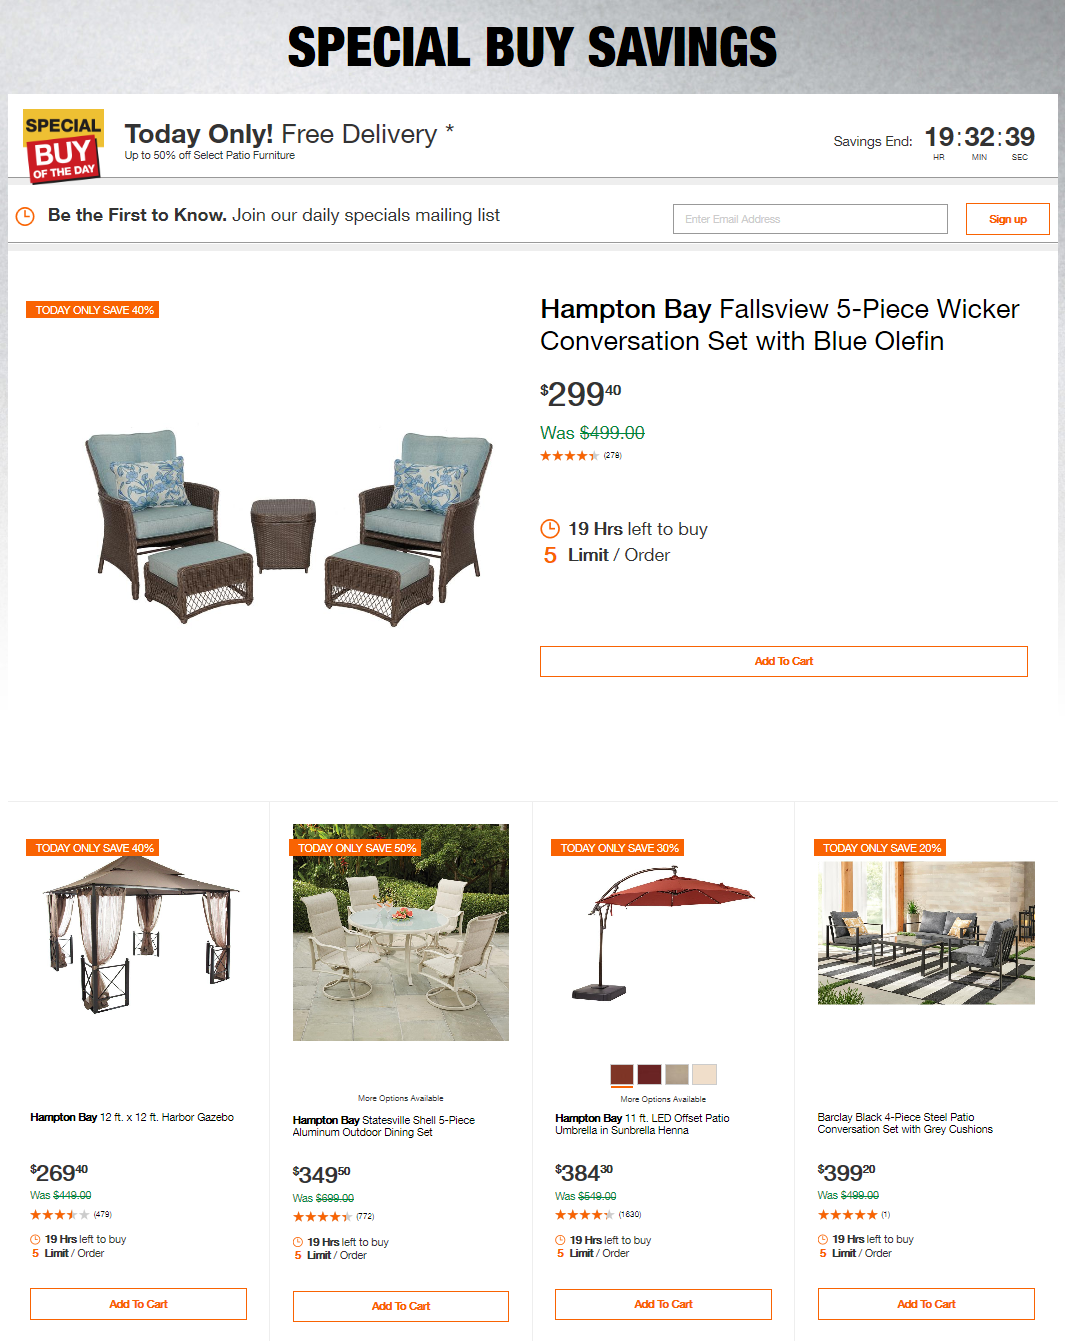 Home Depot Coupons Up To 50 Off Select Patio Furniture Home Depot Coupons Home Depot Patio